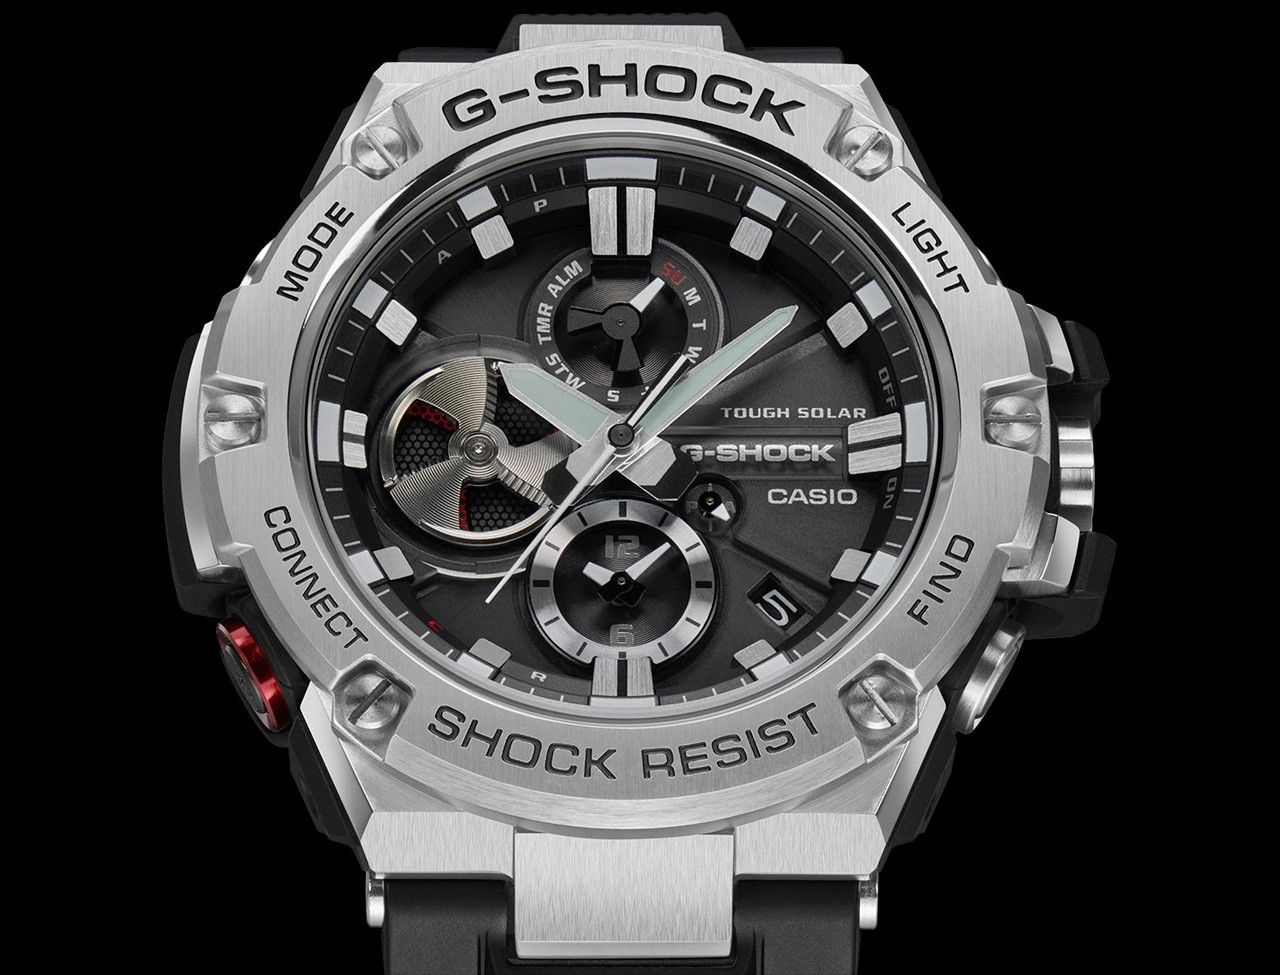 thumb cropped casio watches fffcfa first p solar mudmaster shock class g rc tough gwg sgp premium